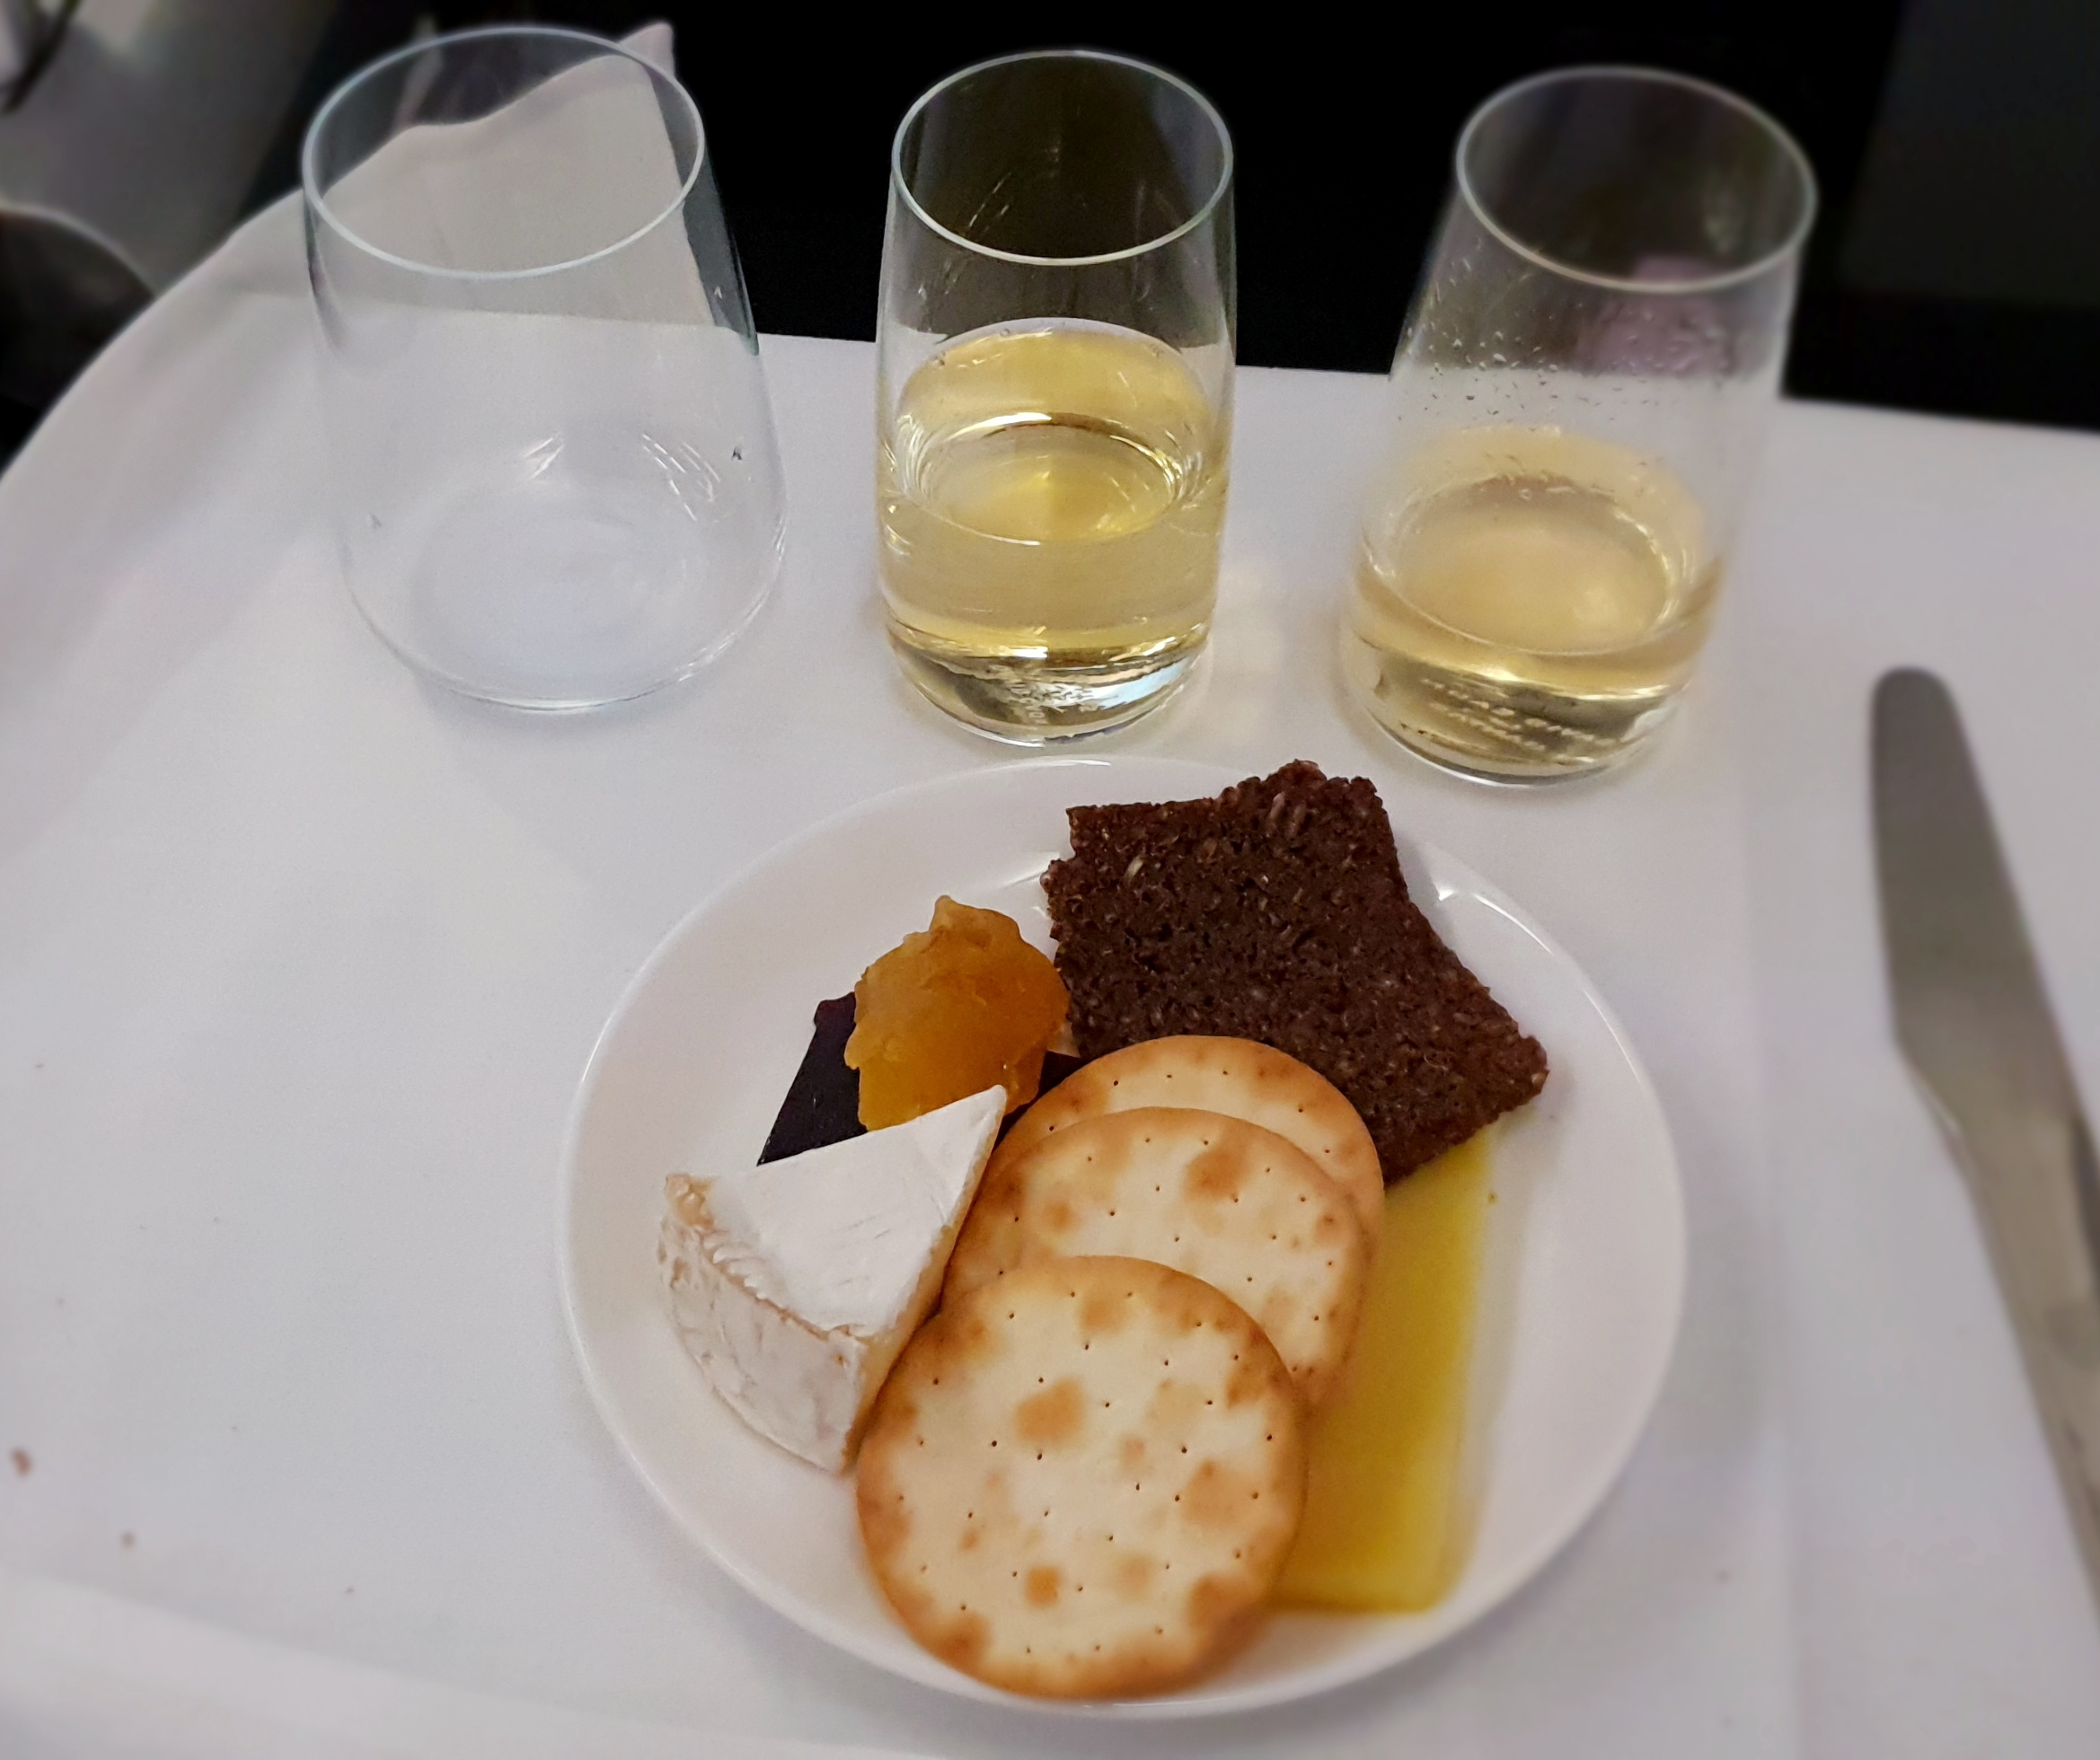 Qantas Cheese and Crackers